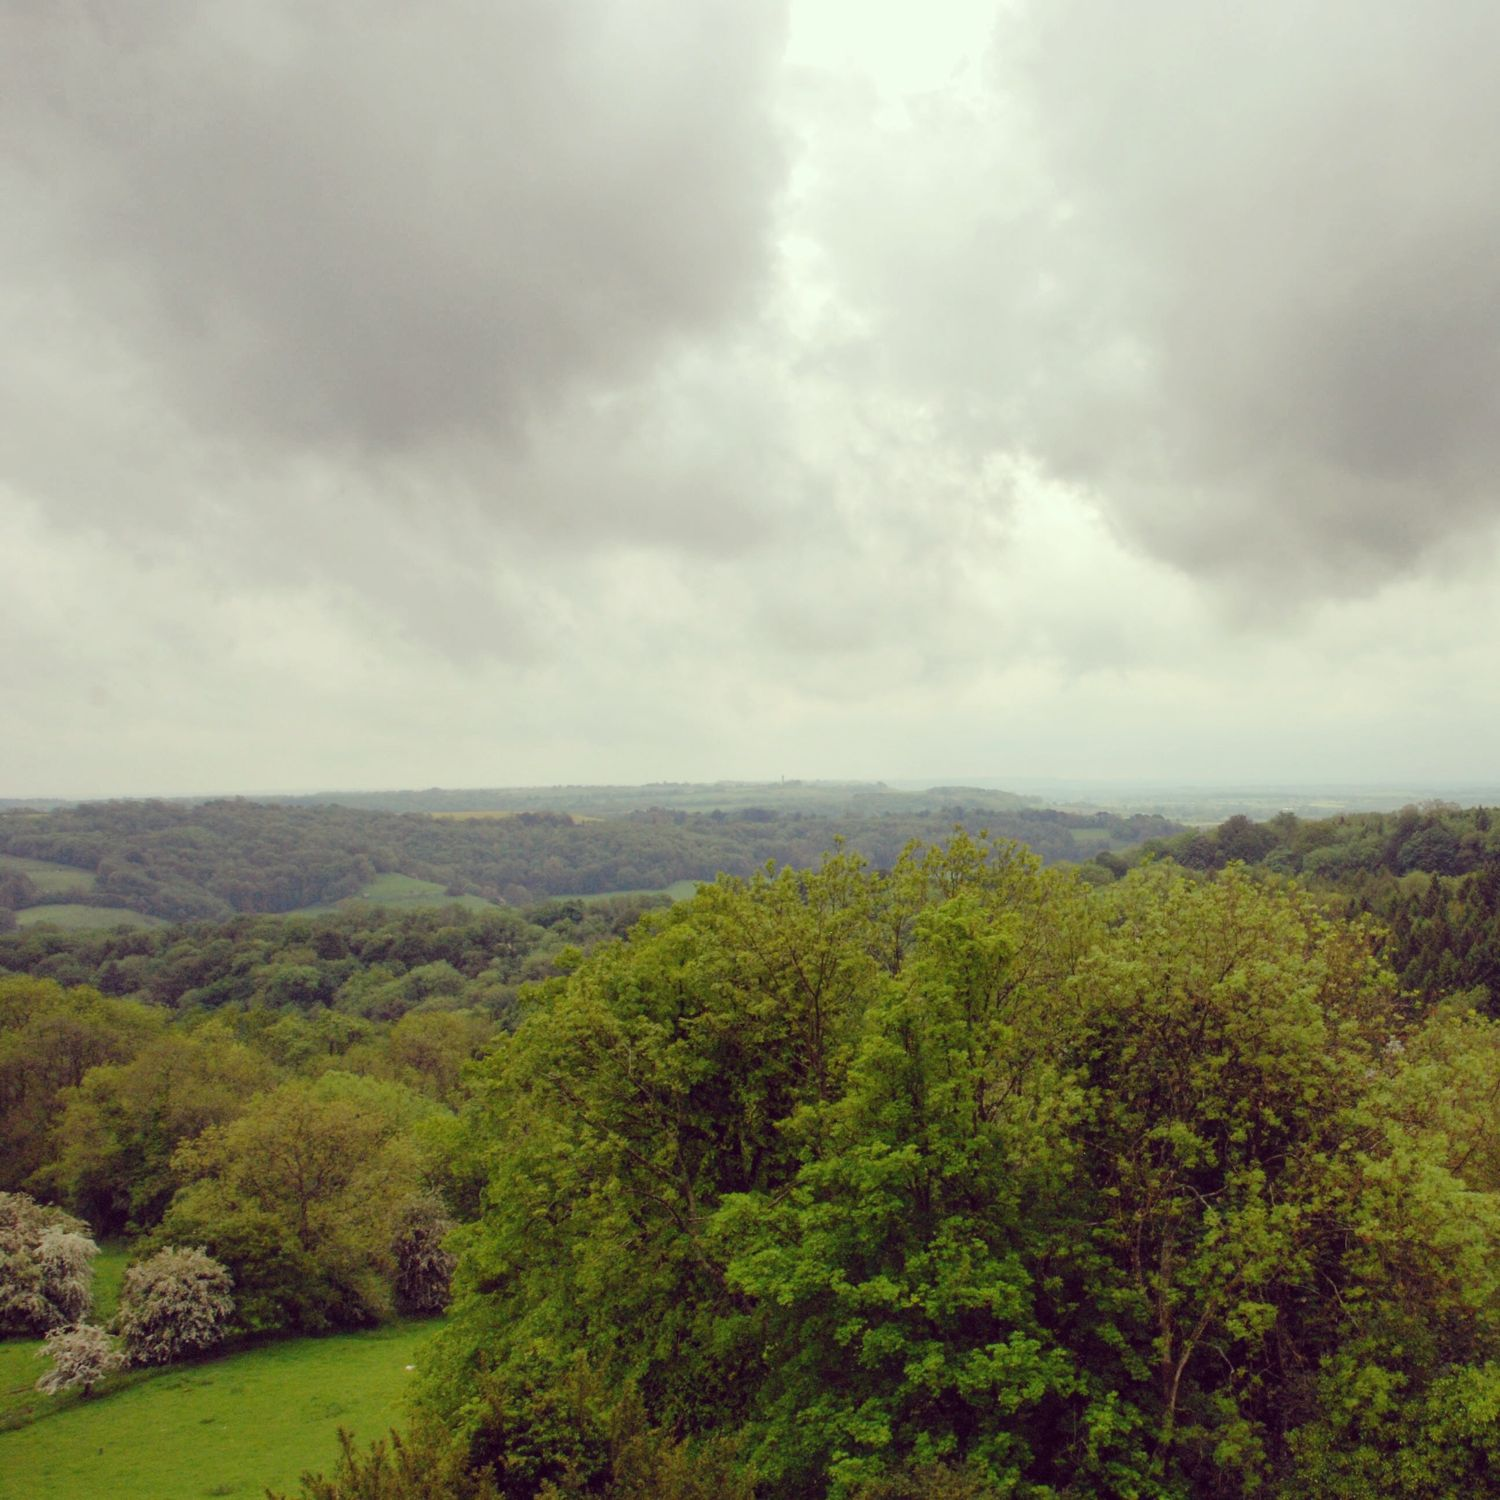 The amazing view across the rain-soaked Ozleworth Valley from Newark Park